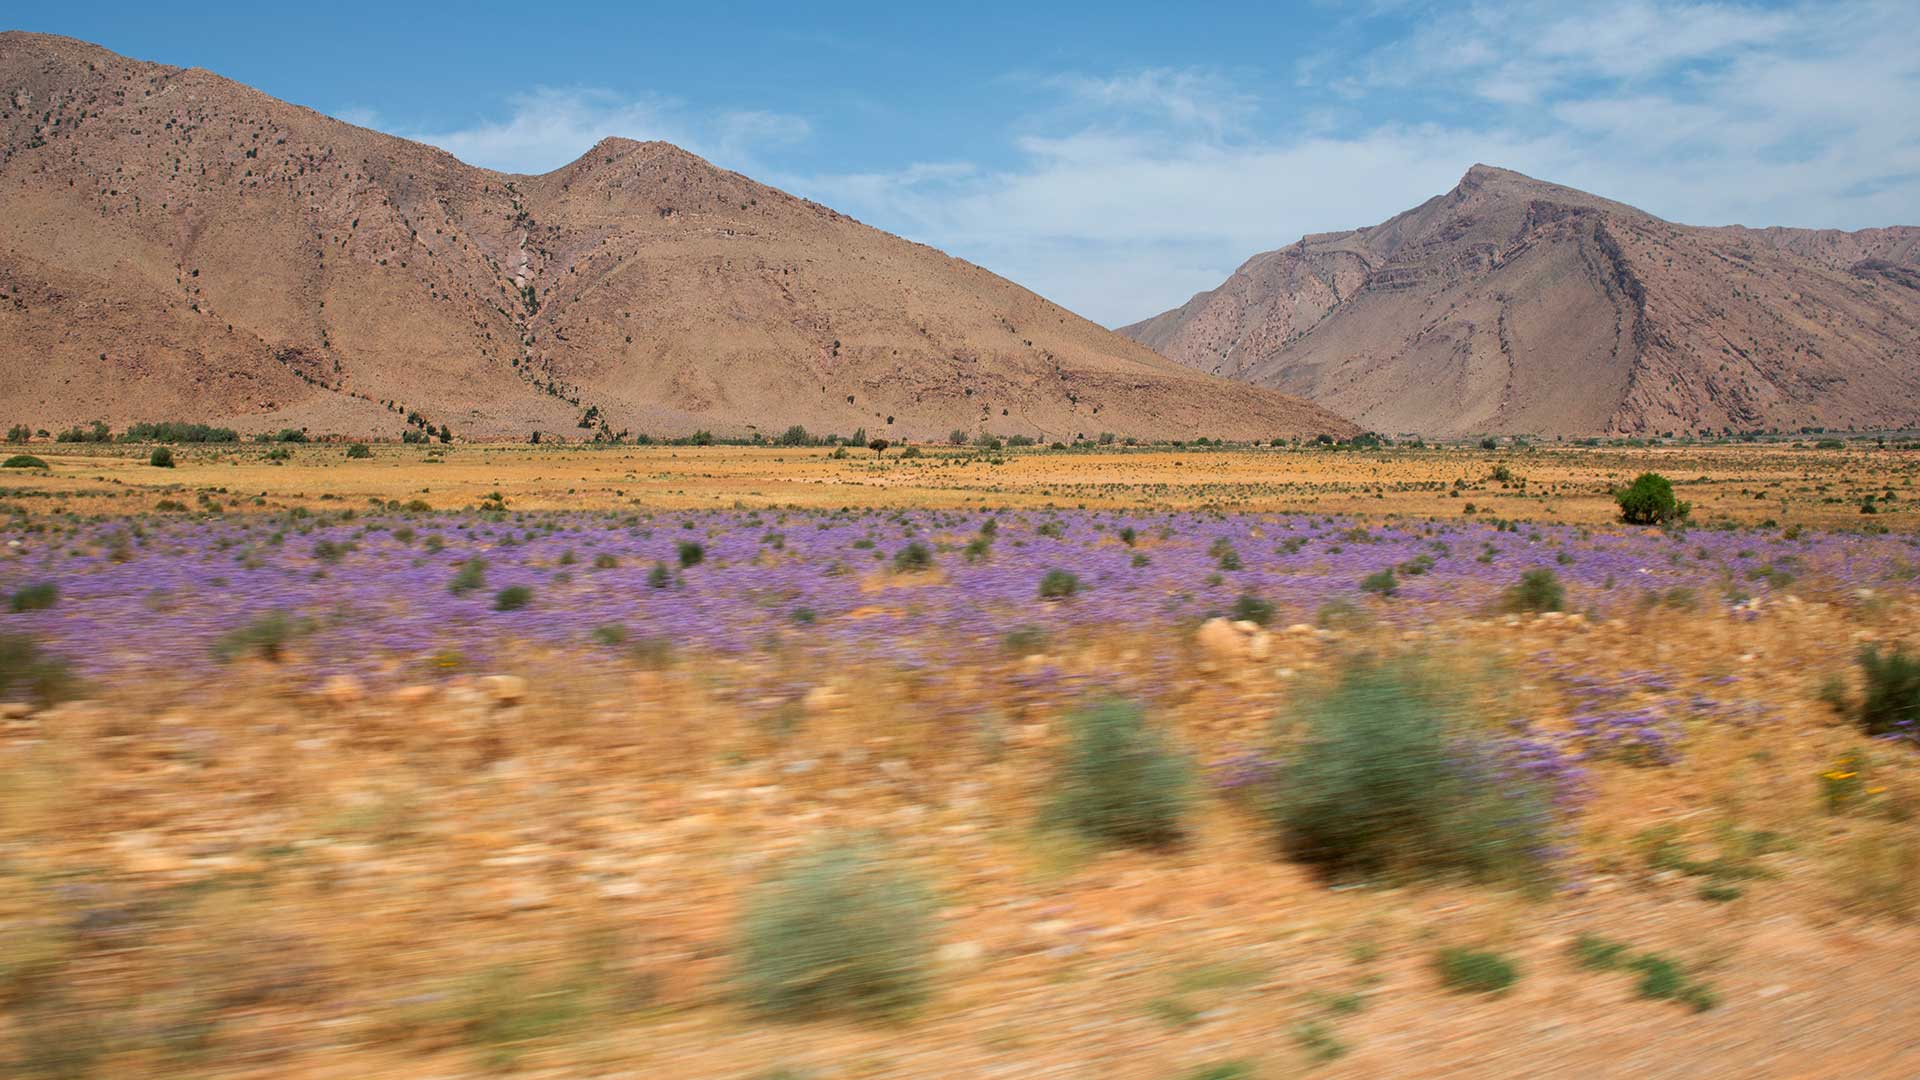 Desert mountain and flowers